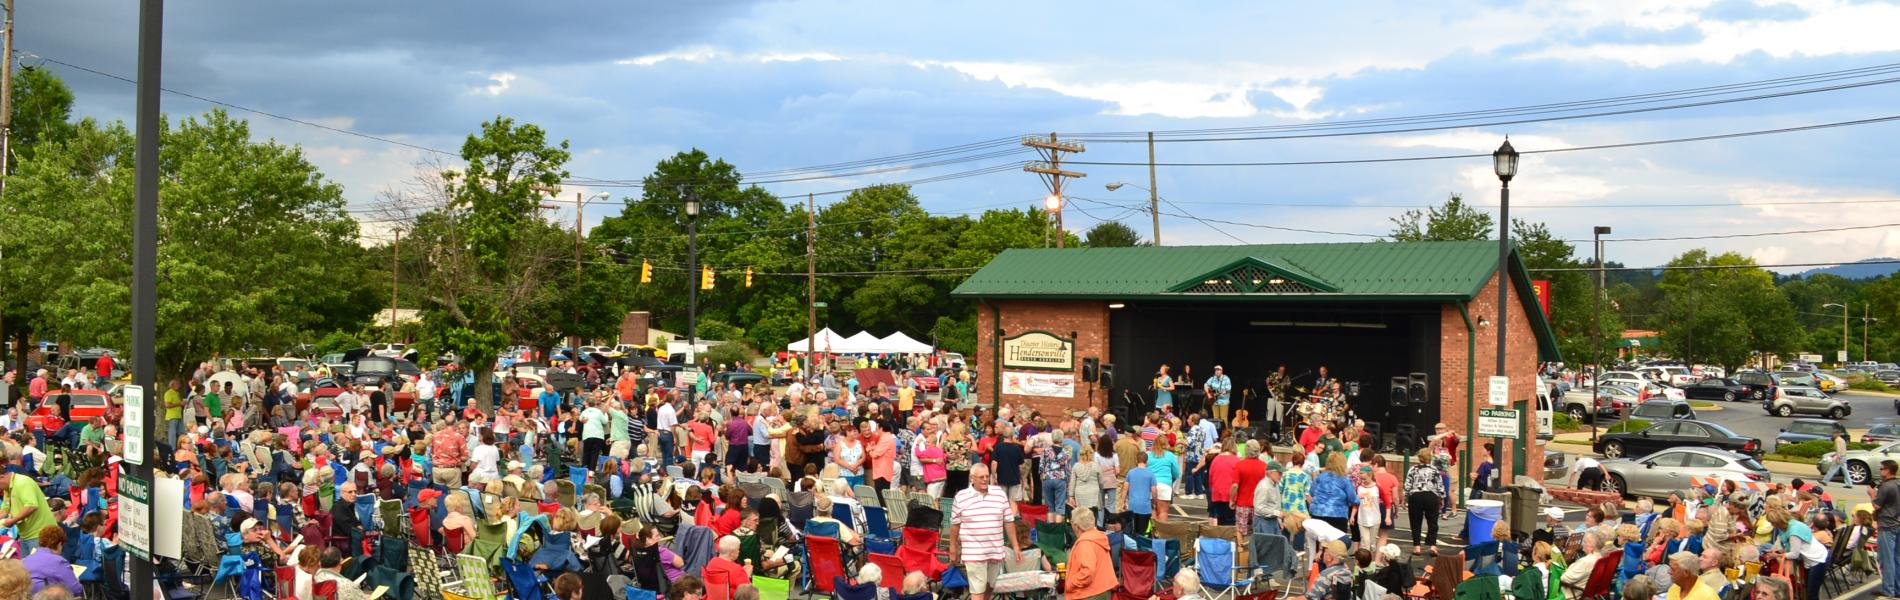 Music on Main Street, Live Music, Outdoor Concert